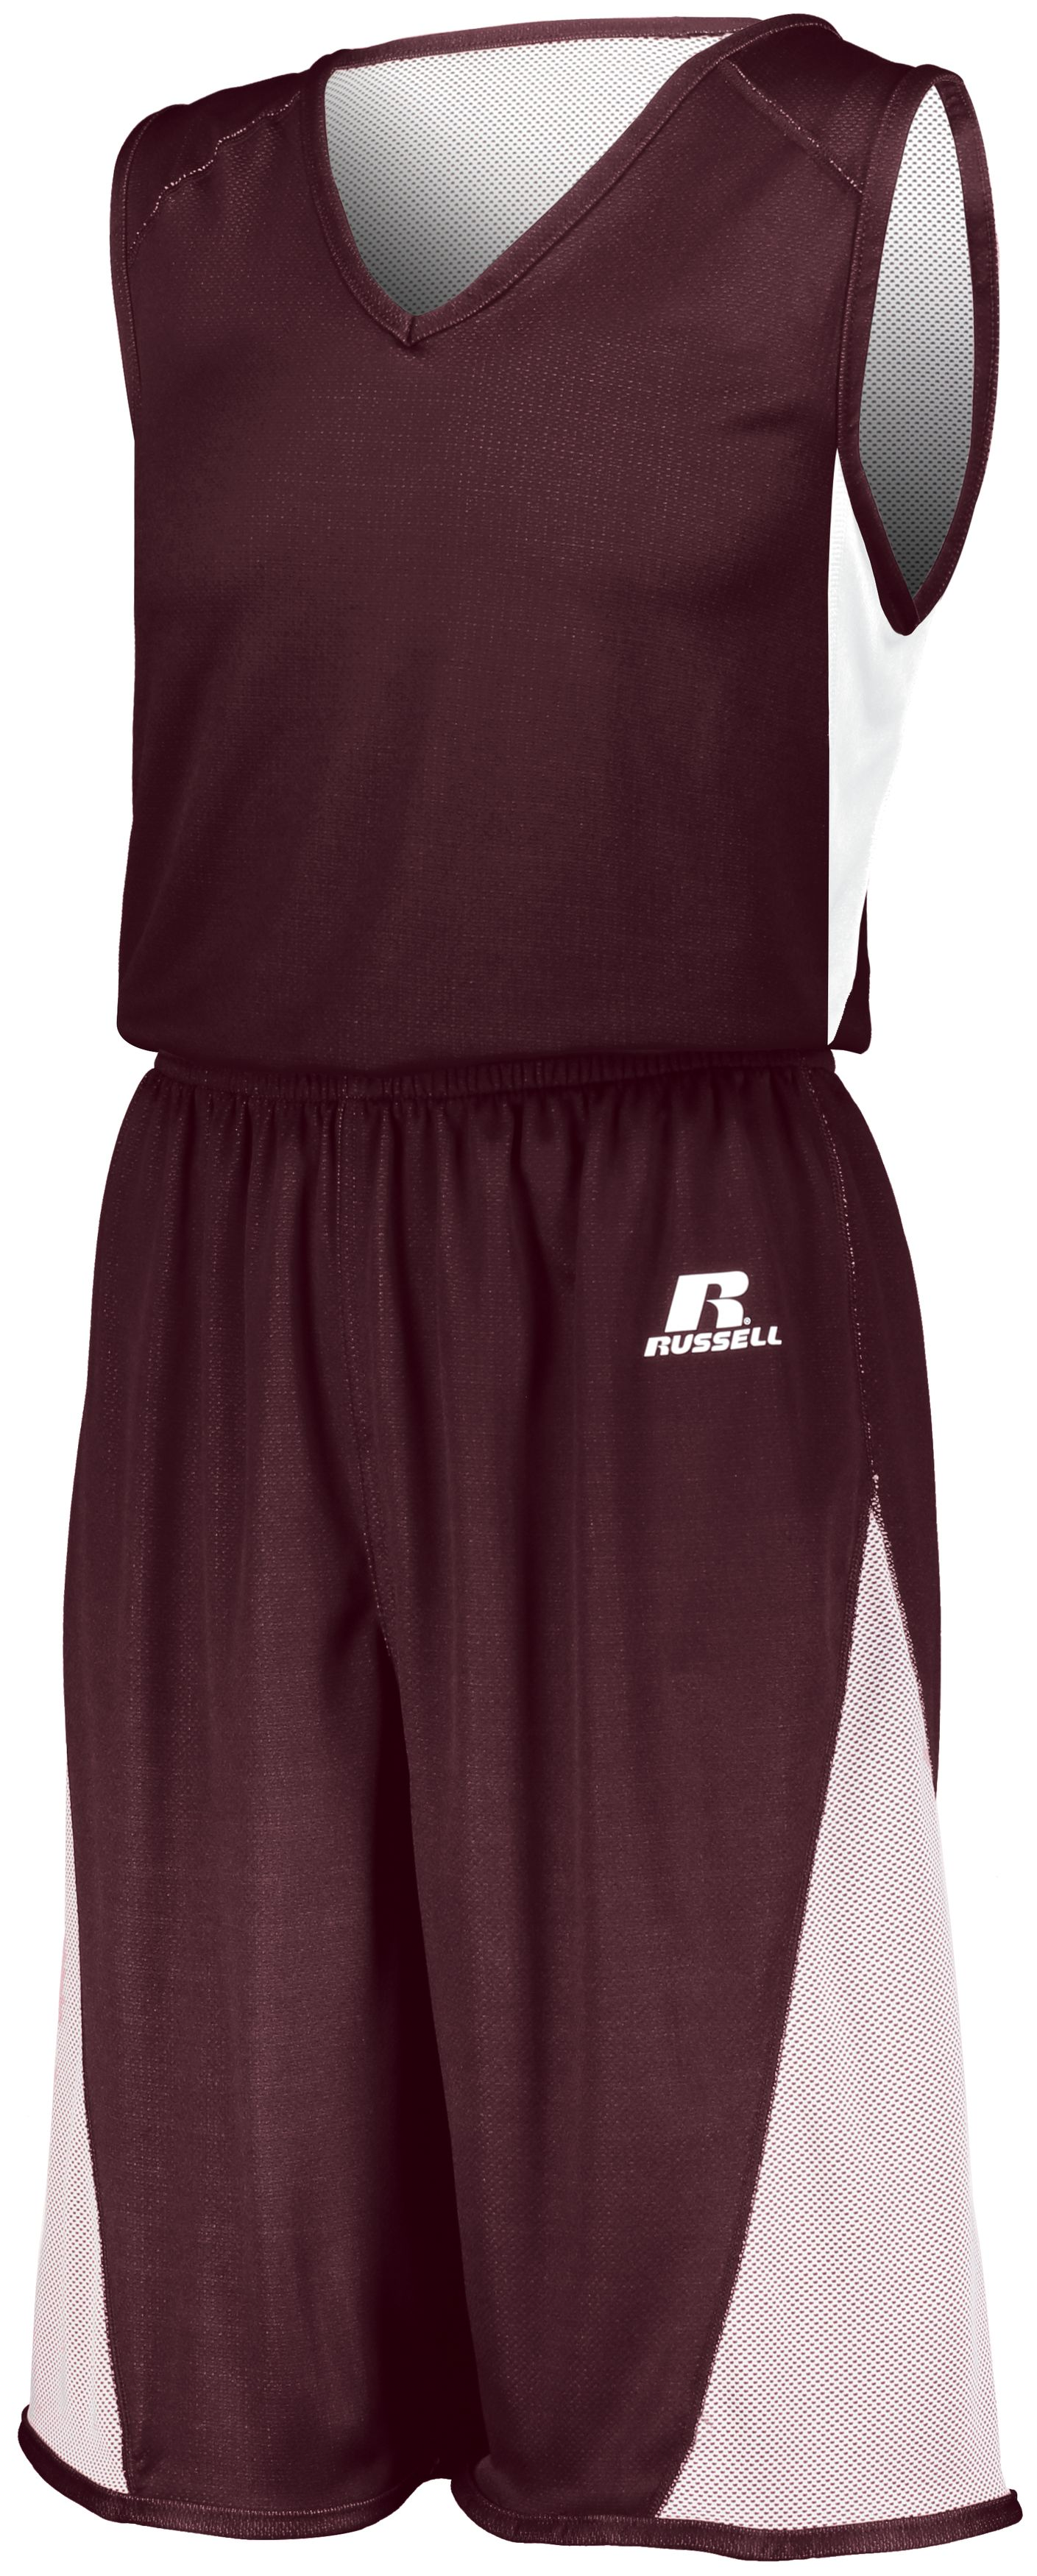 Undivided Single Ply Reversible Jersey - MAROON/WHITE